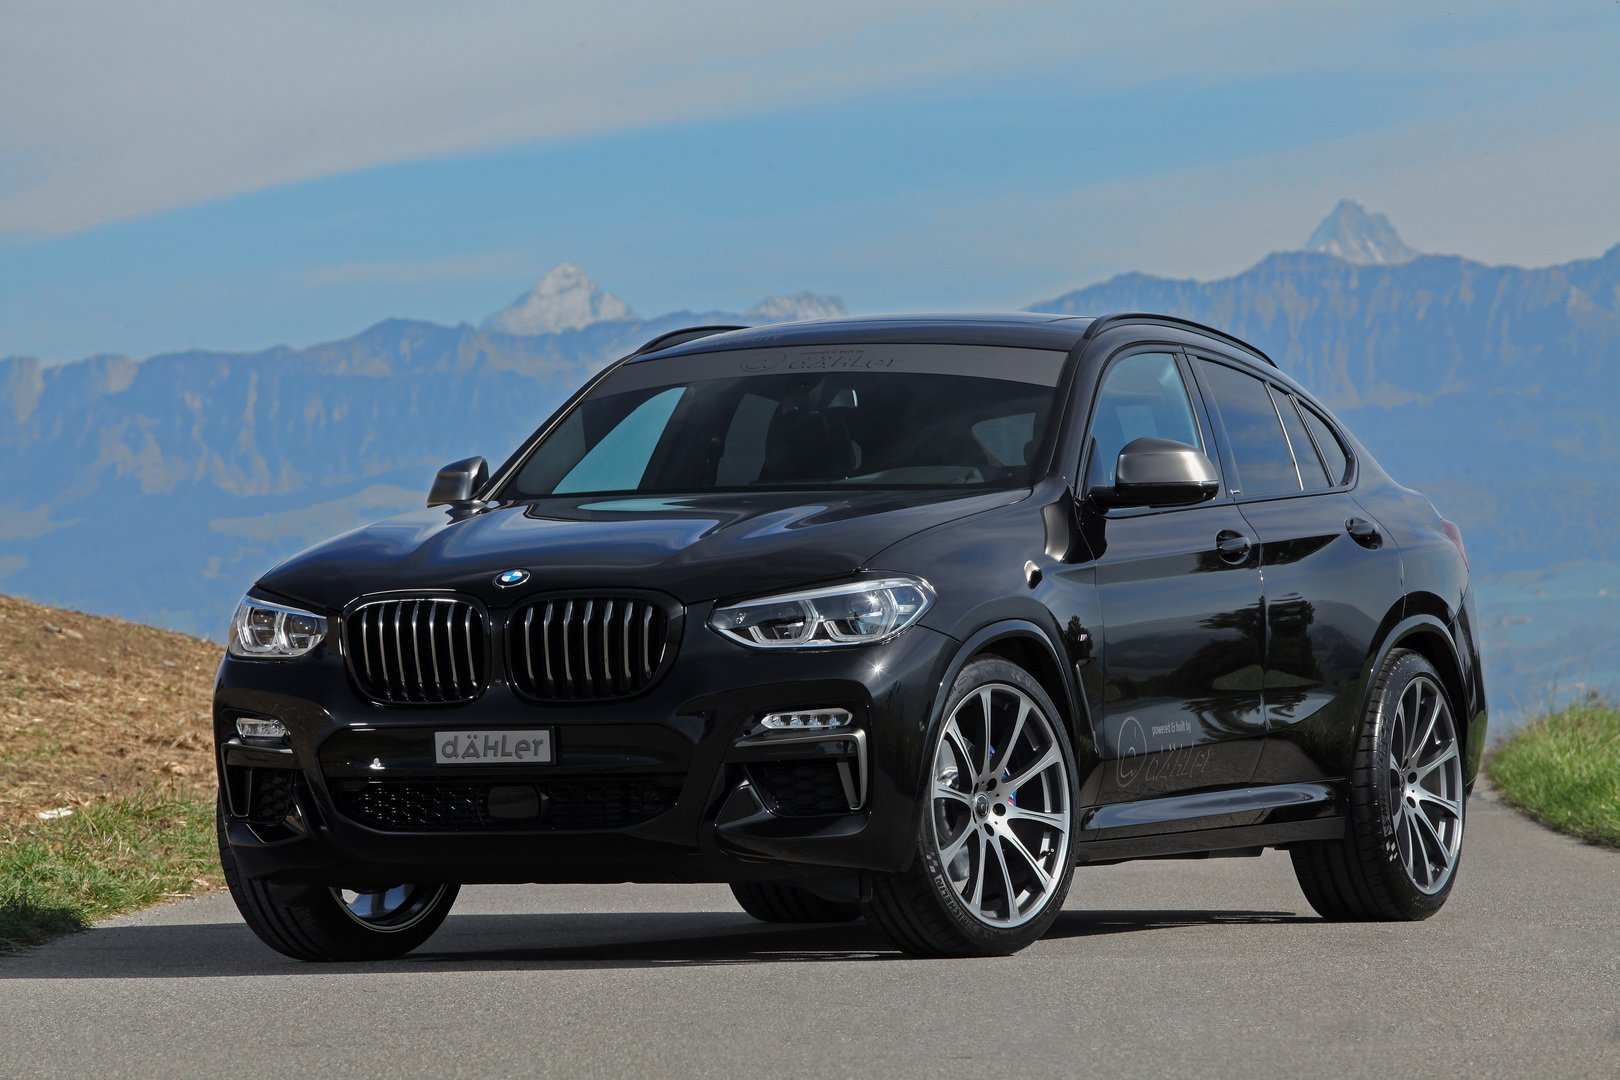 bmw x4 m40i gets 420 hp and dark theme from dahler. Black Bedroom Furniture Sets. Home Design Ideas